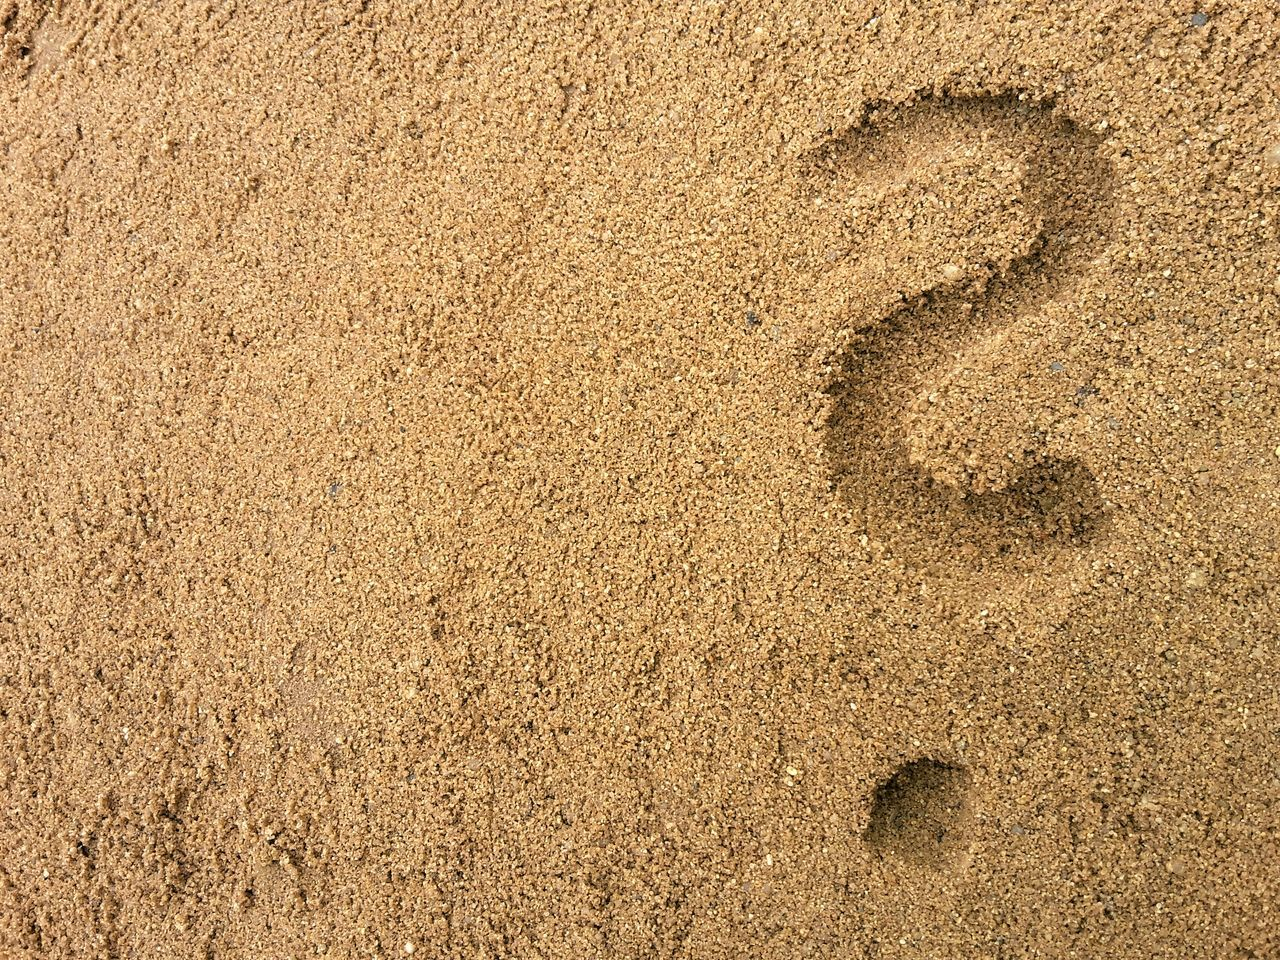 question mark in the sand Backgrounds Full Frame Textured  Gold Colored No People Close-up Sand Day Outdoors Neg Space Copy Space Sand Beach Travel Vacation Question Mark Clueless Drawn Where To Go? Where To Go For Vacation Copy Space Negative Space Neg Space Symbol nature. Sunshine. Summer